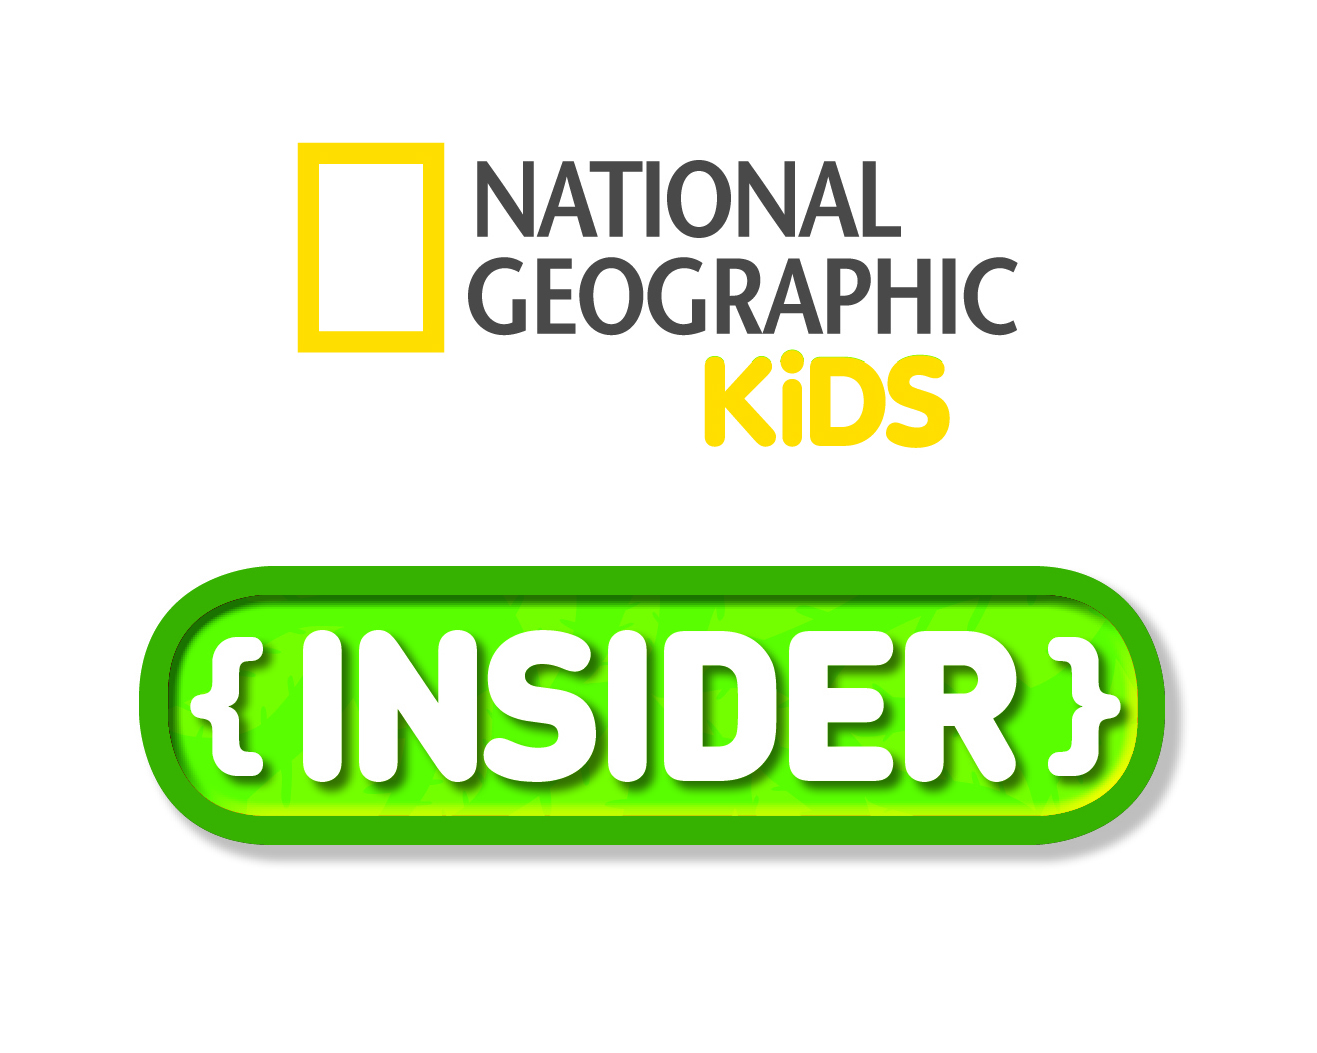 FINAL INSIDER LOGO Hi-Res